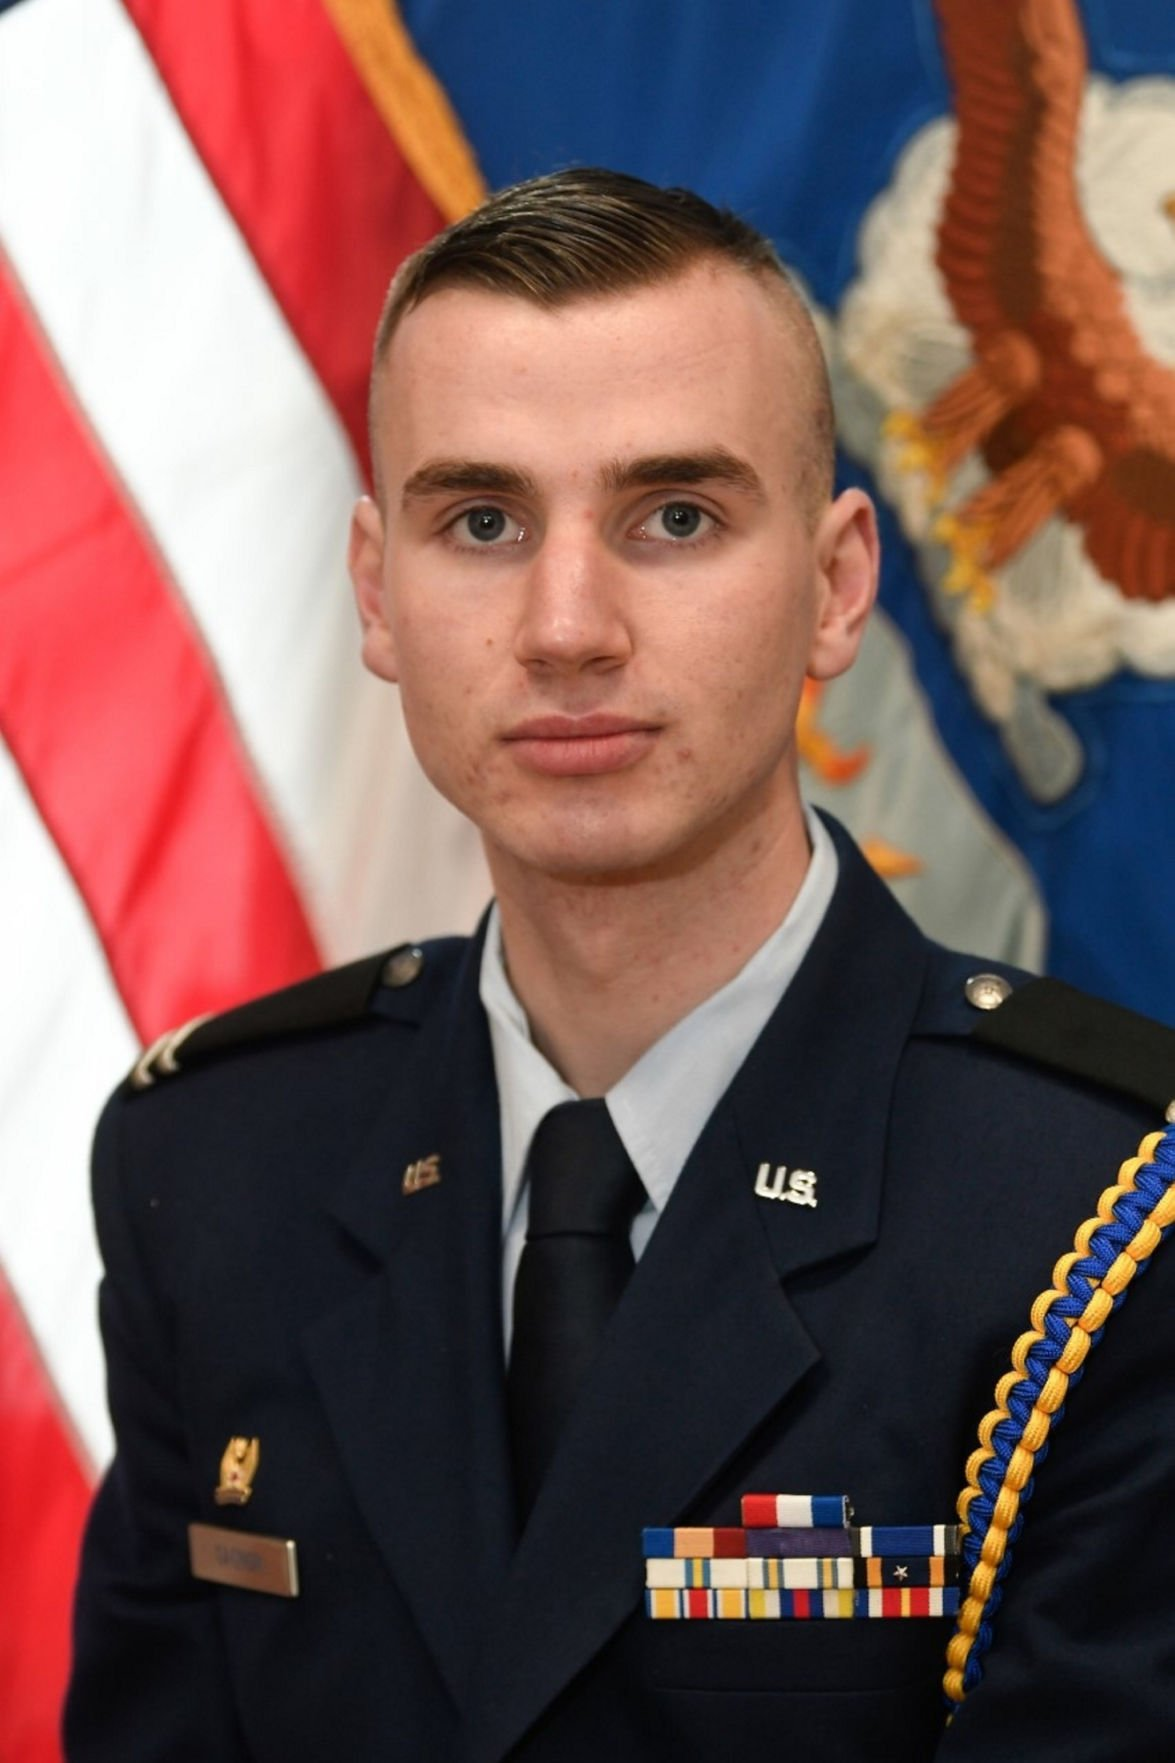 Clarkson ROTC graduate to join U.S. Space Force